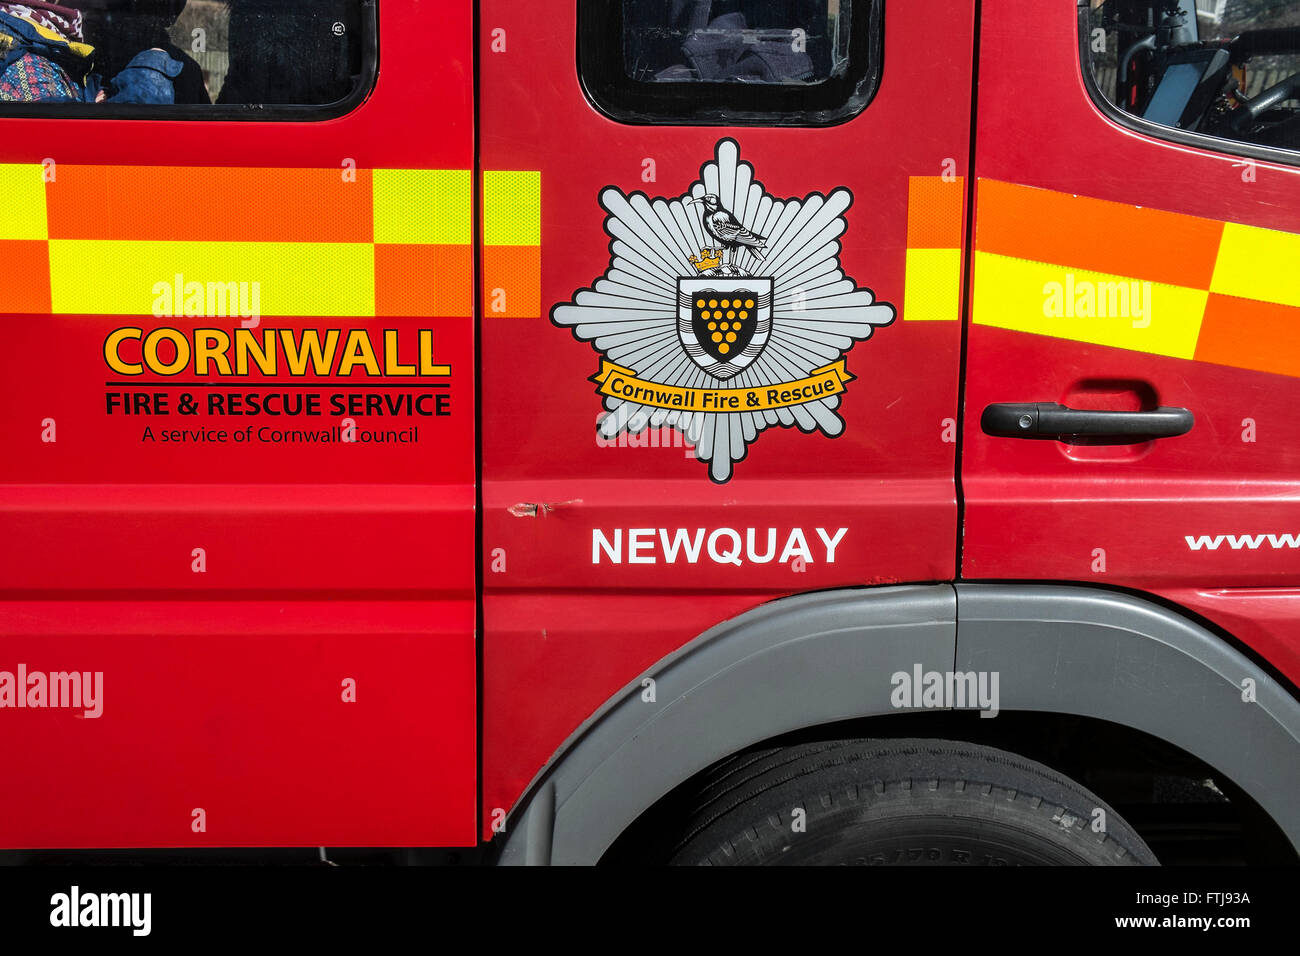 The crest of the Cornwall Fire & Rescue Service on the side of a Cornish Fire Engine. - Stock Image